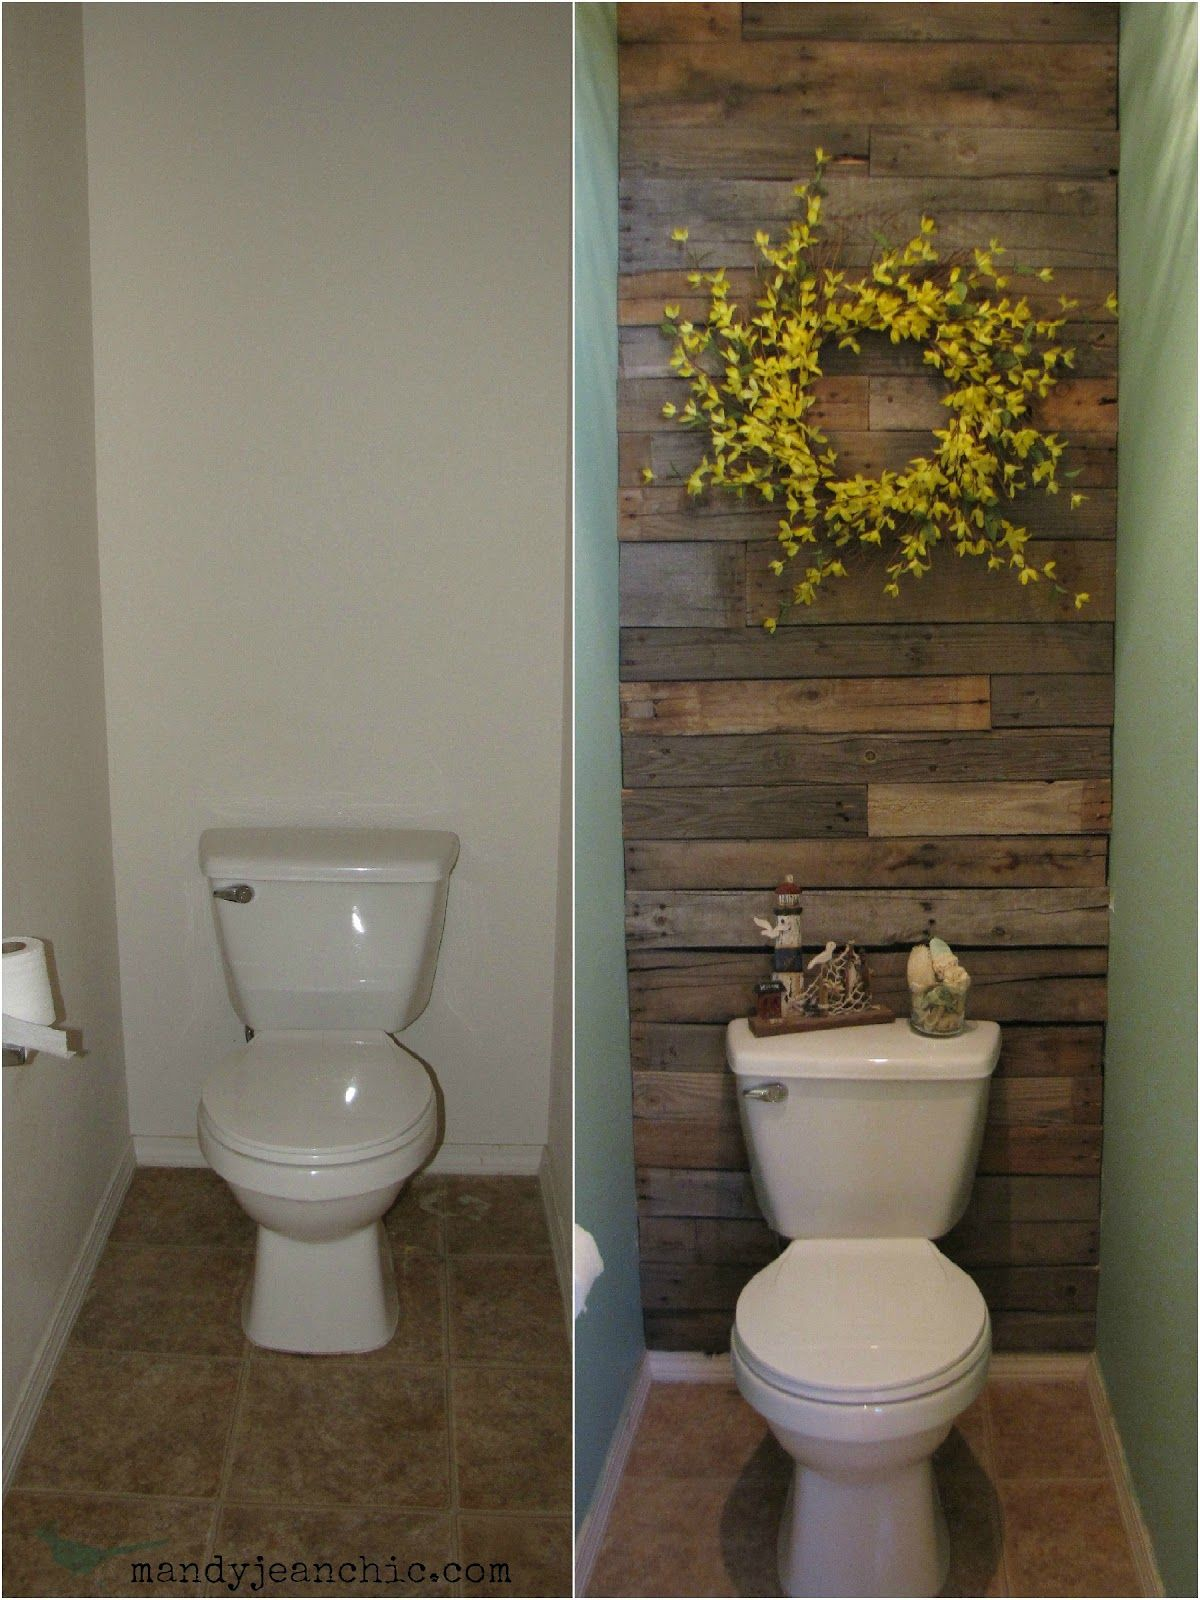 Great Project Free Toilet Room Makeover Using Pallet Wood And Leftover Paint